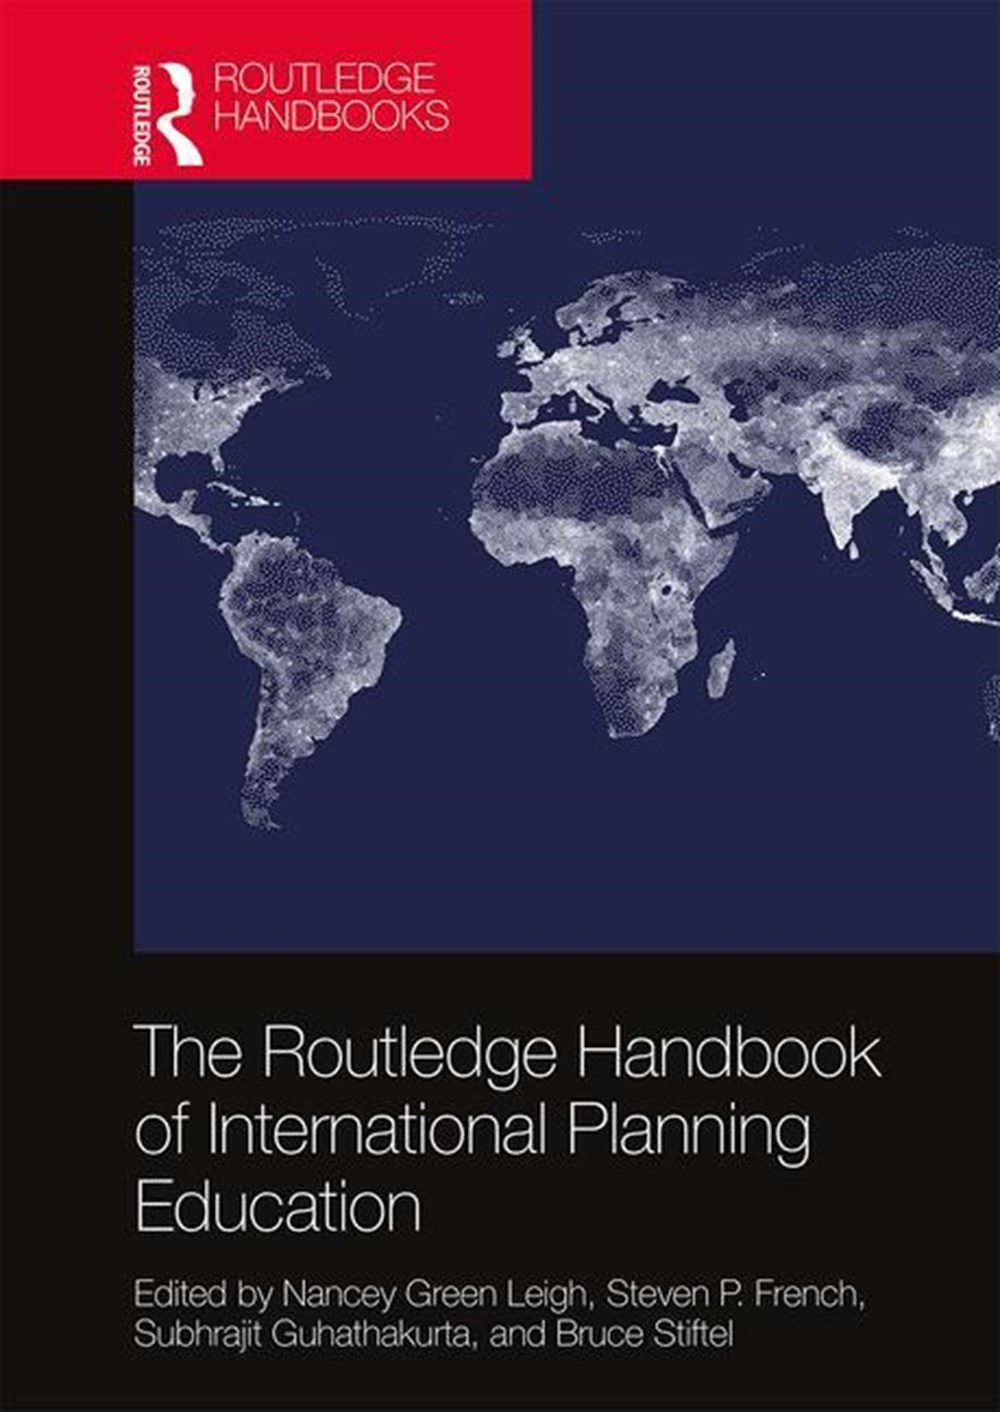 Routledge Handbook of International Planning Education